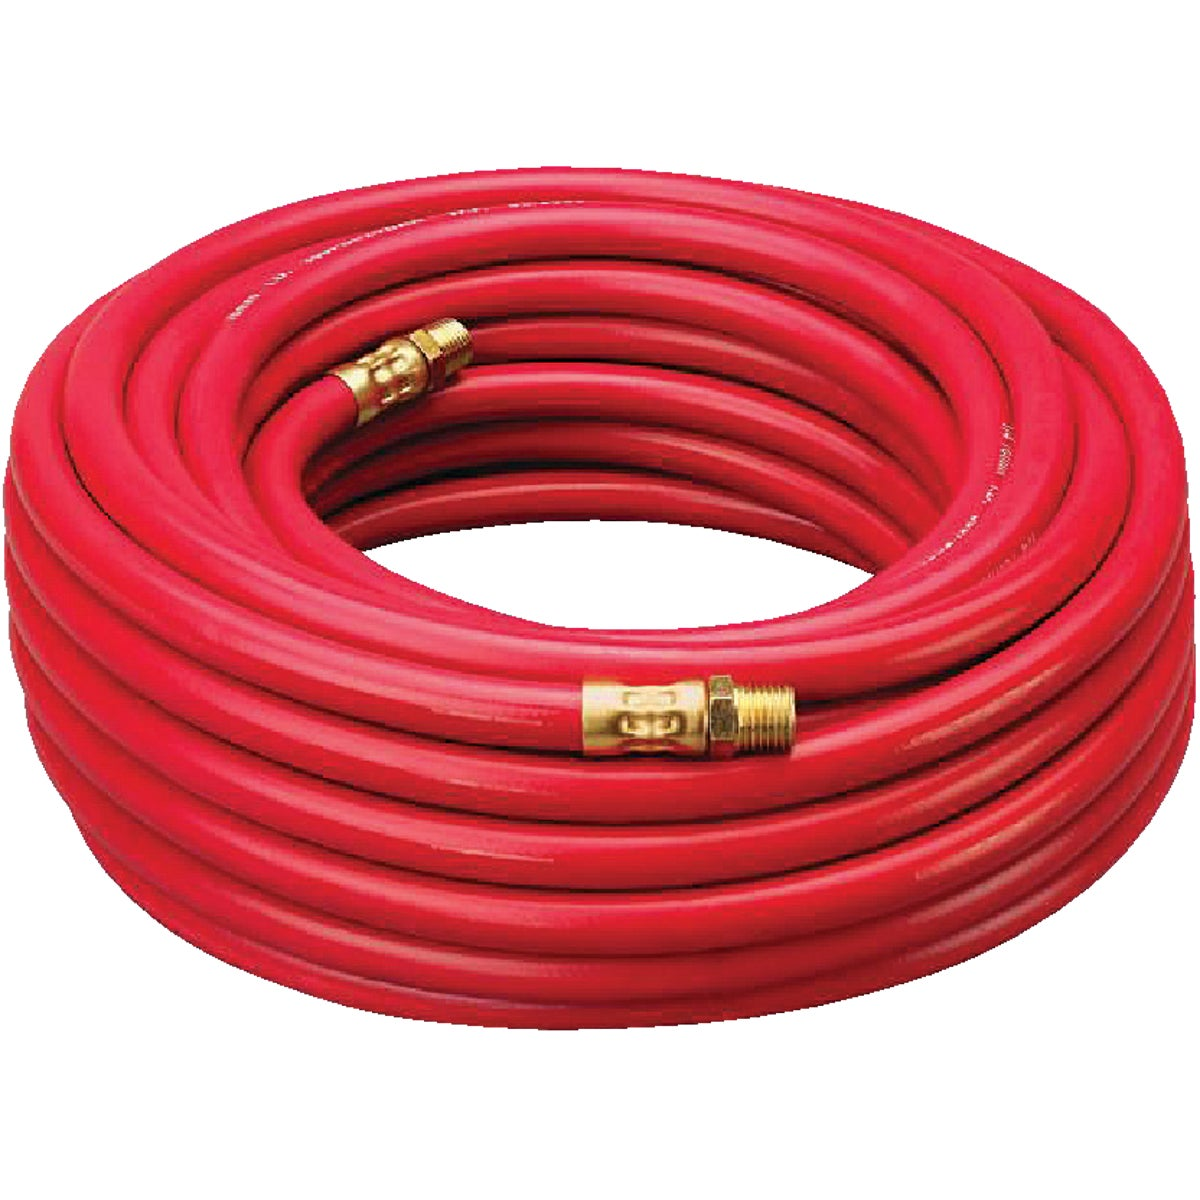 "1/4""X50' RUBBER AIR HOSE - 512-50E by Plews  Lubrimatic"